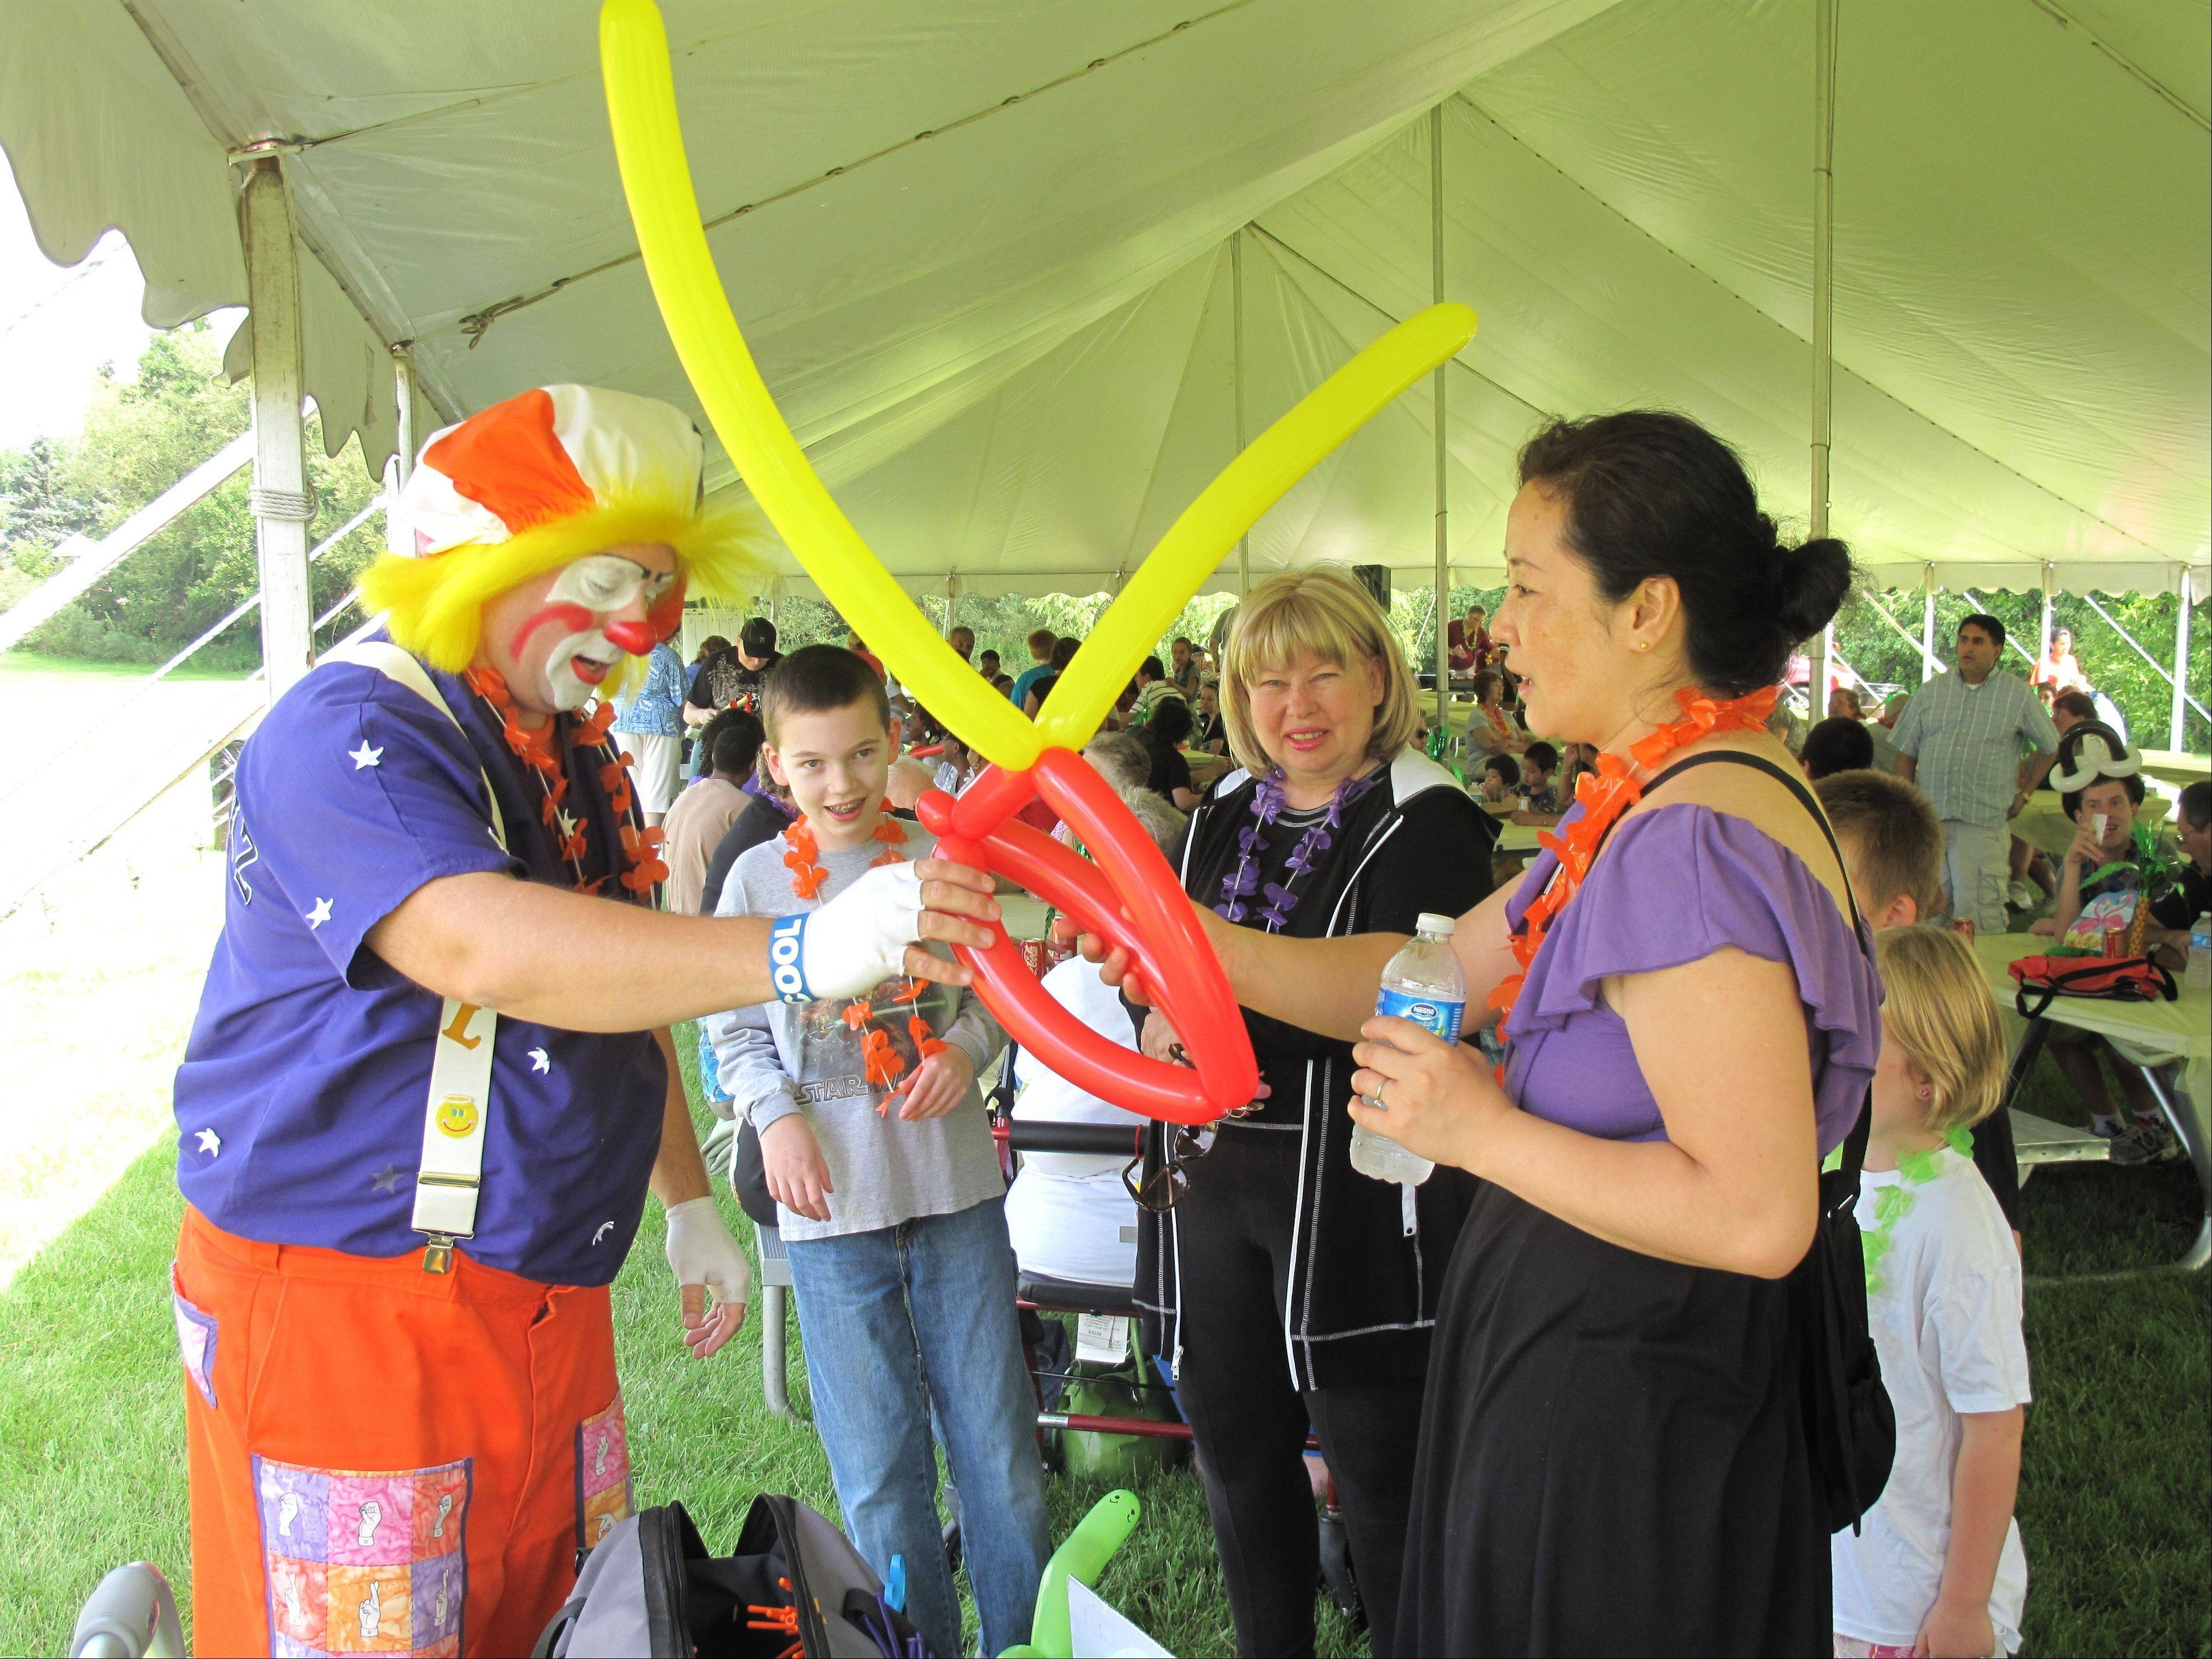 A clown entertains guests Saturday, Aug. 6, at the Schaumburg Township Disability Services Luau Picnic.